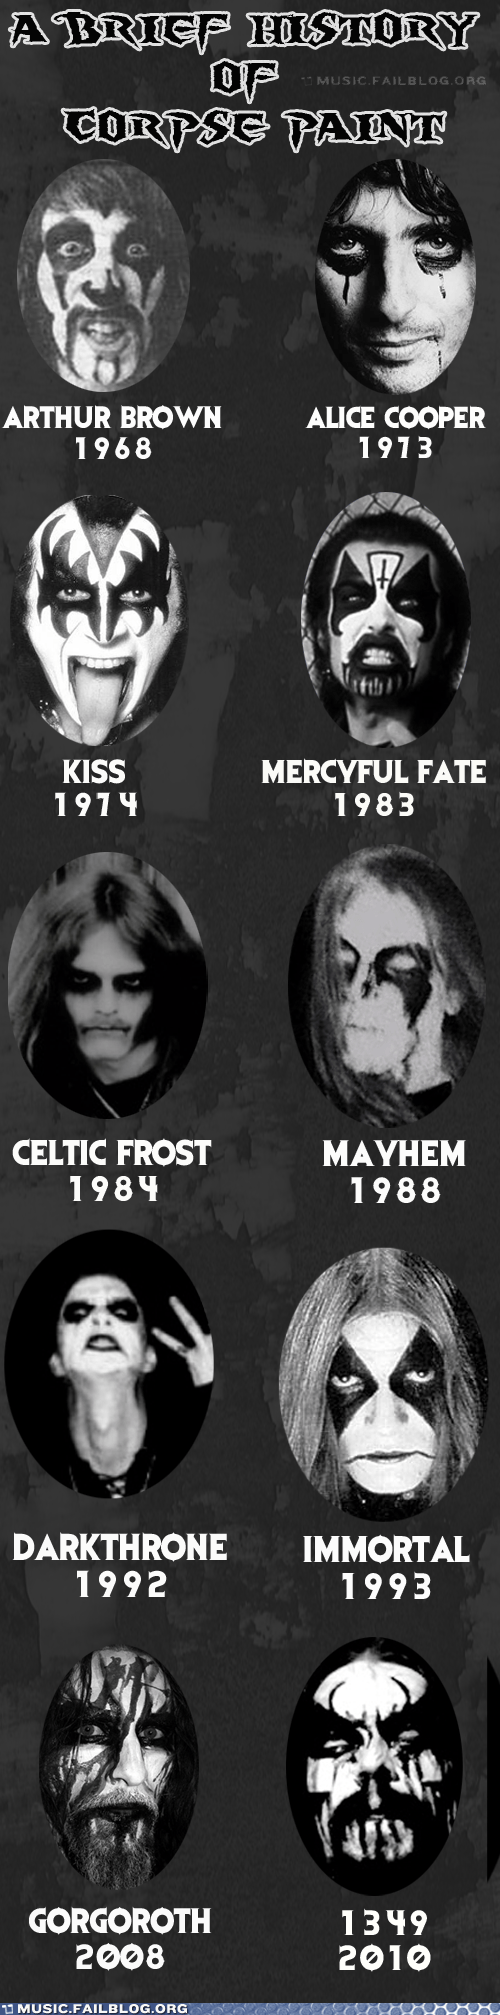 alice cooper,corpse paint,immortal,KISS,metal